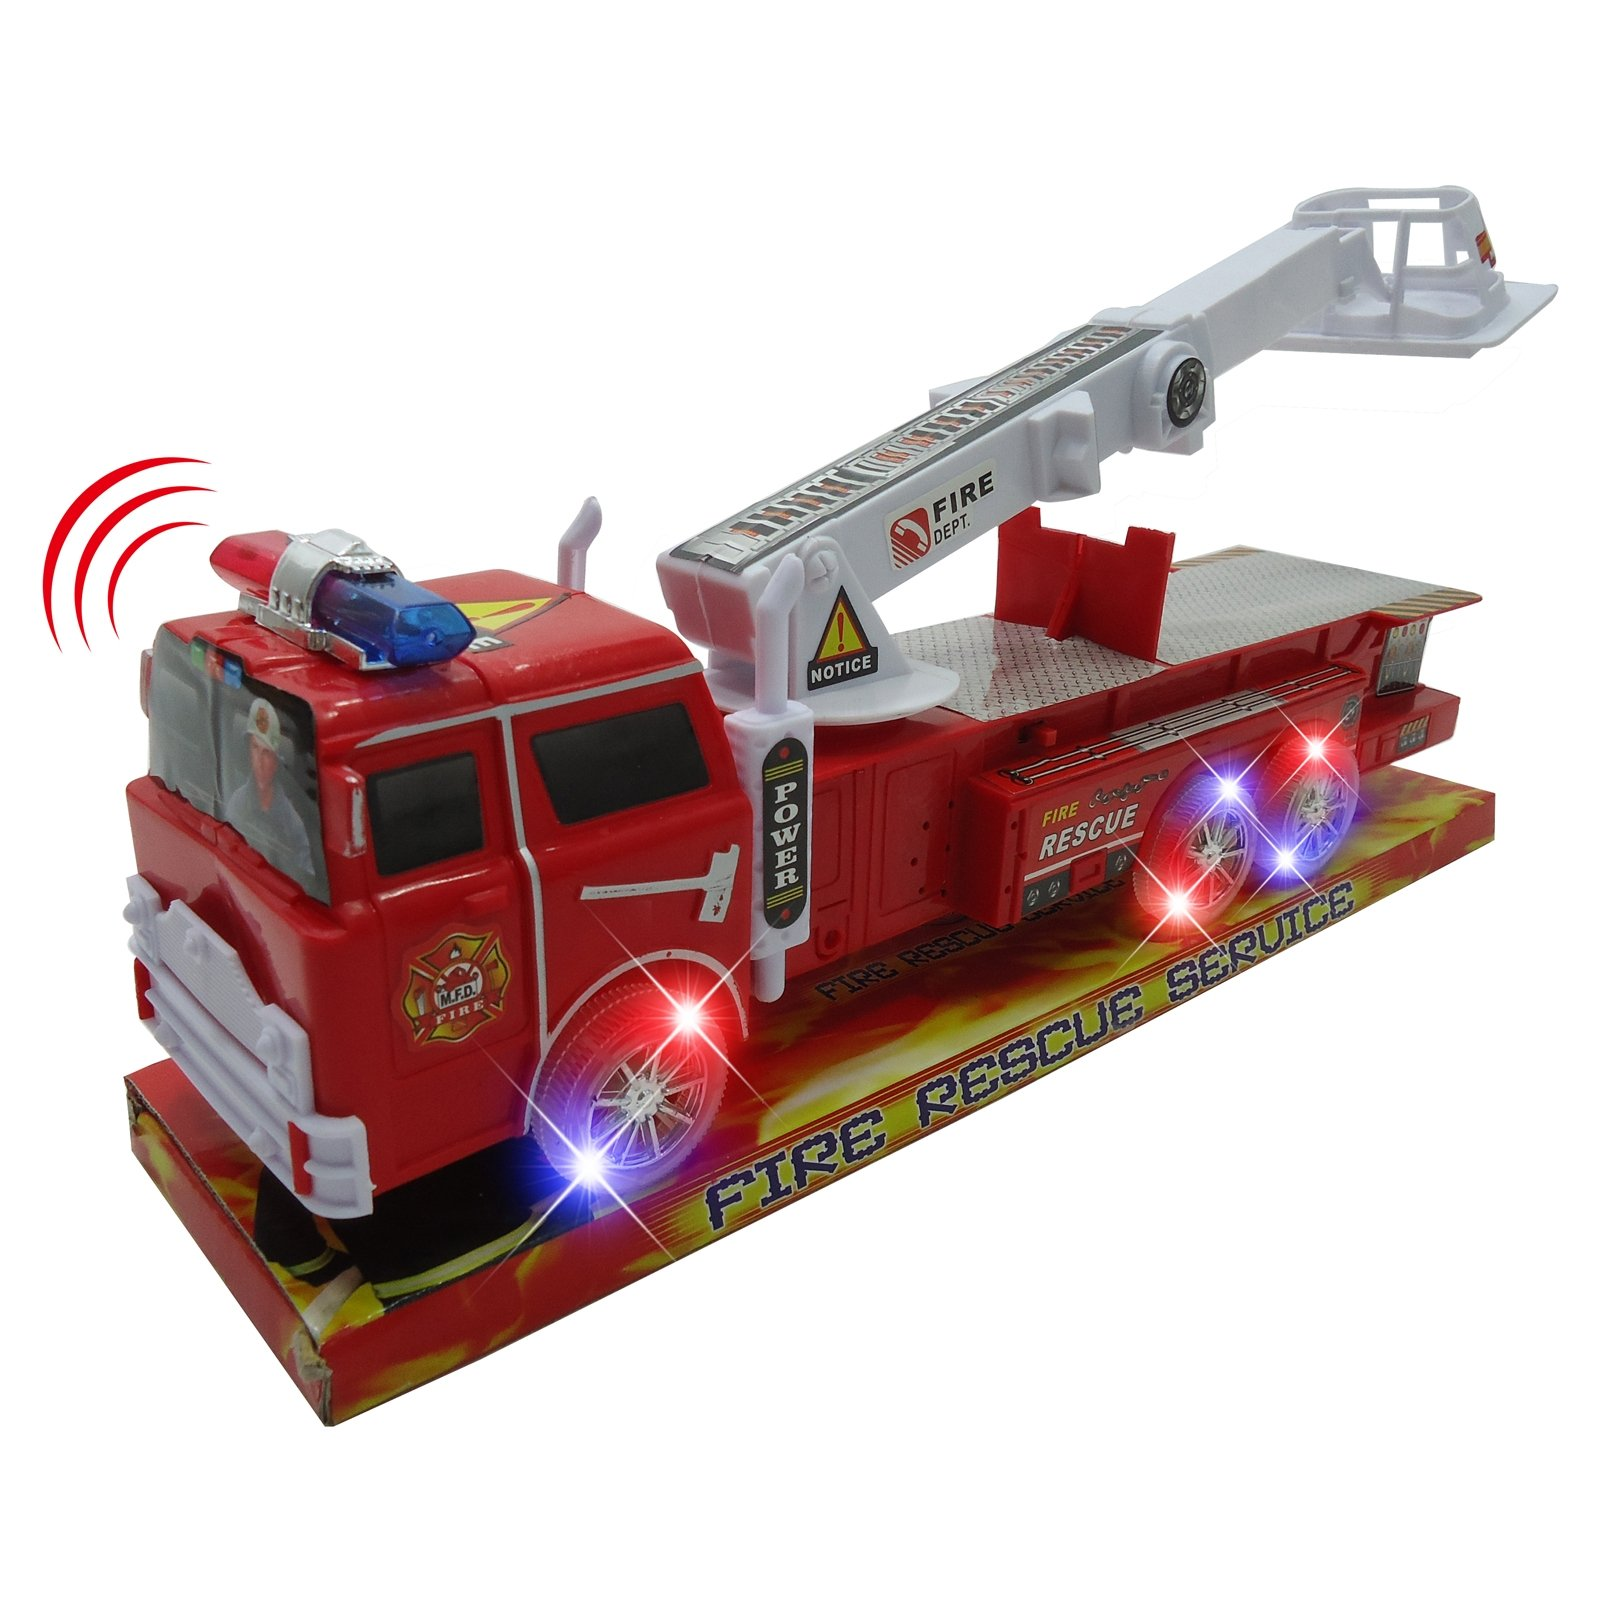 Light Up Fire Engine Rescue Truck with Firefighter Utility Bucket 14 Inch